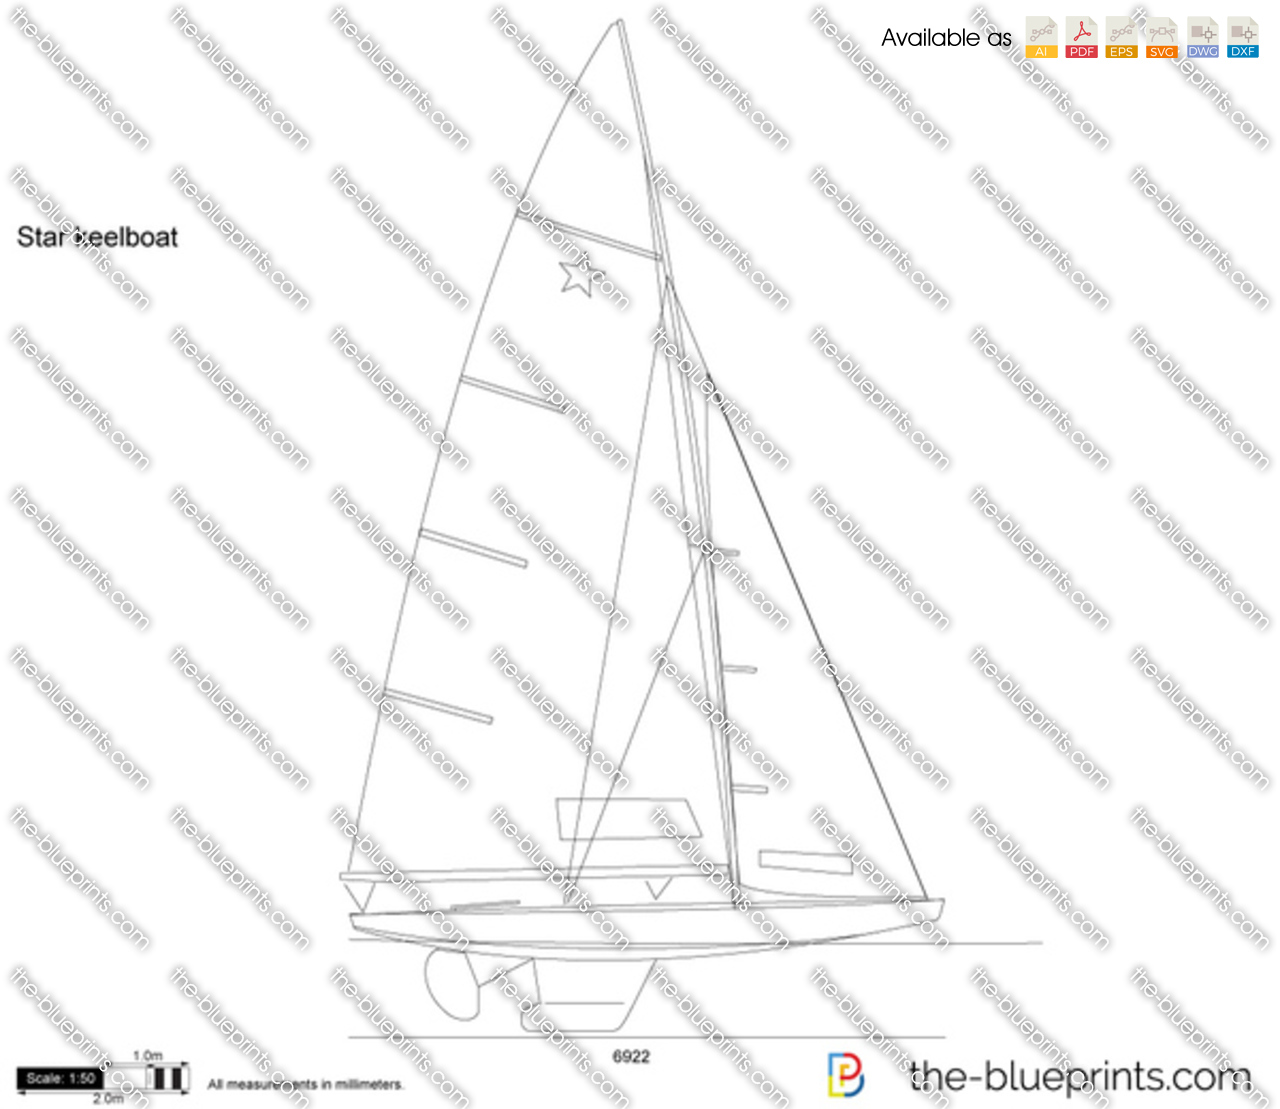 Star keelboat